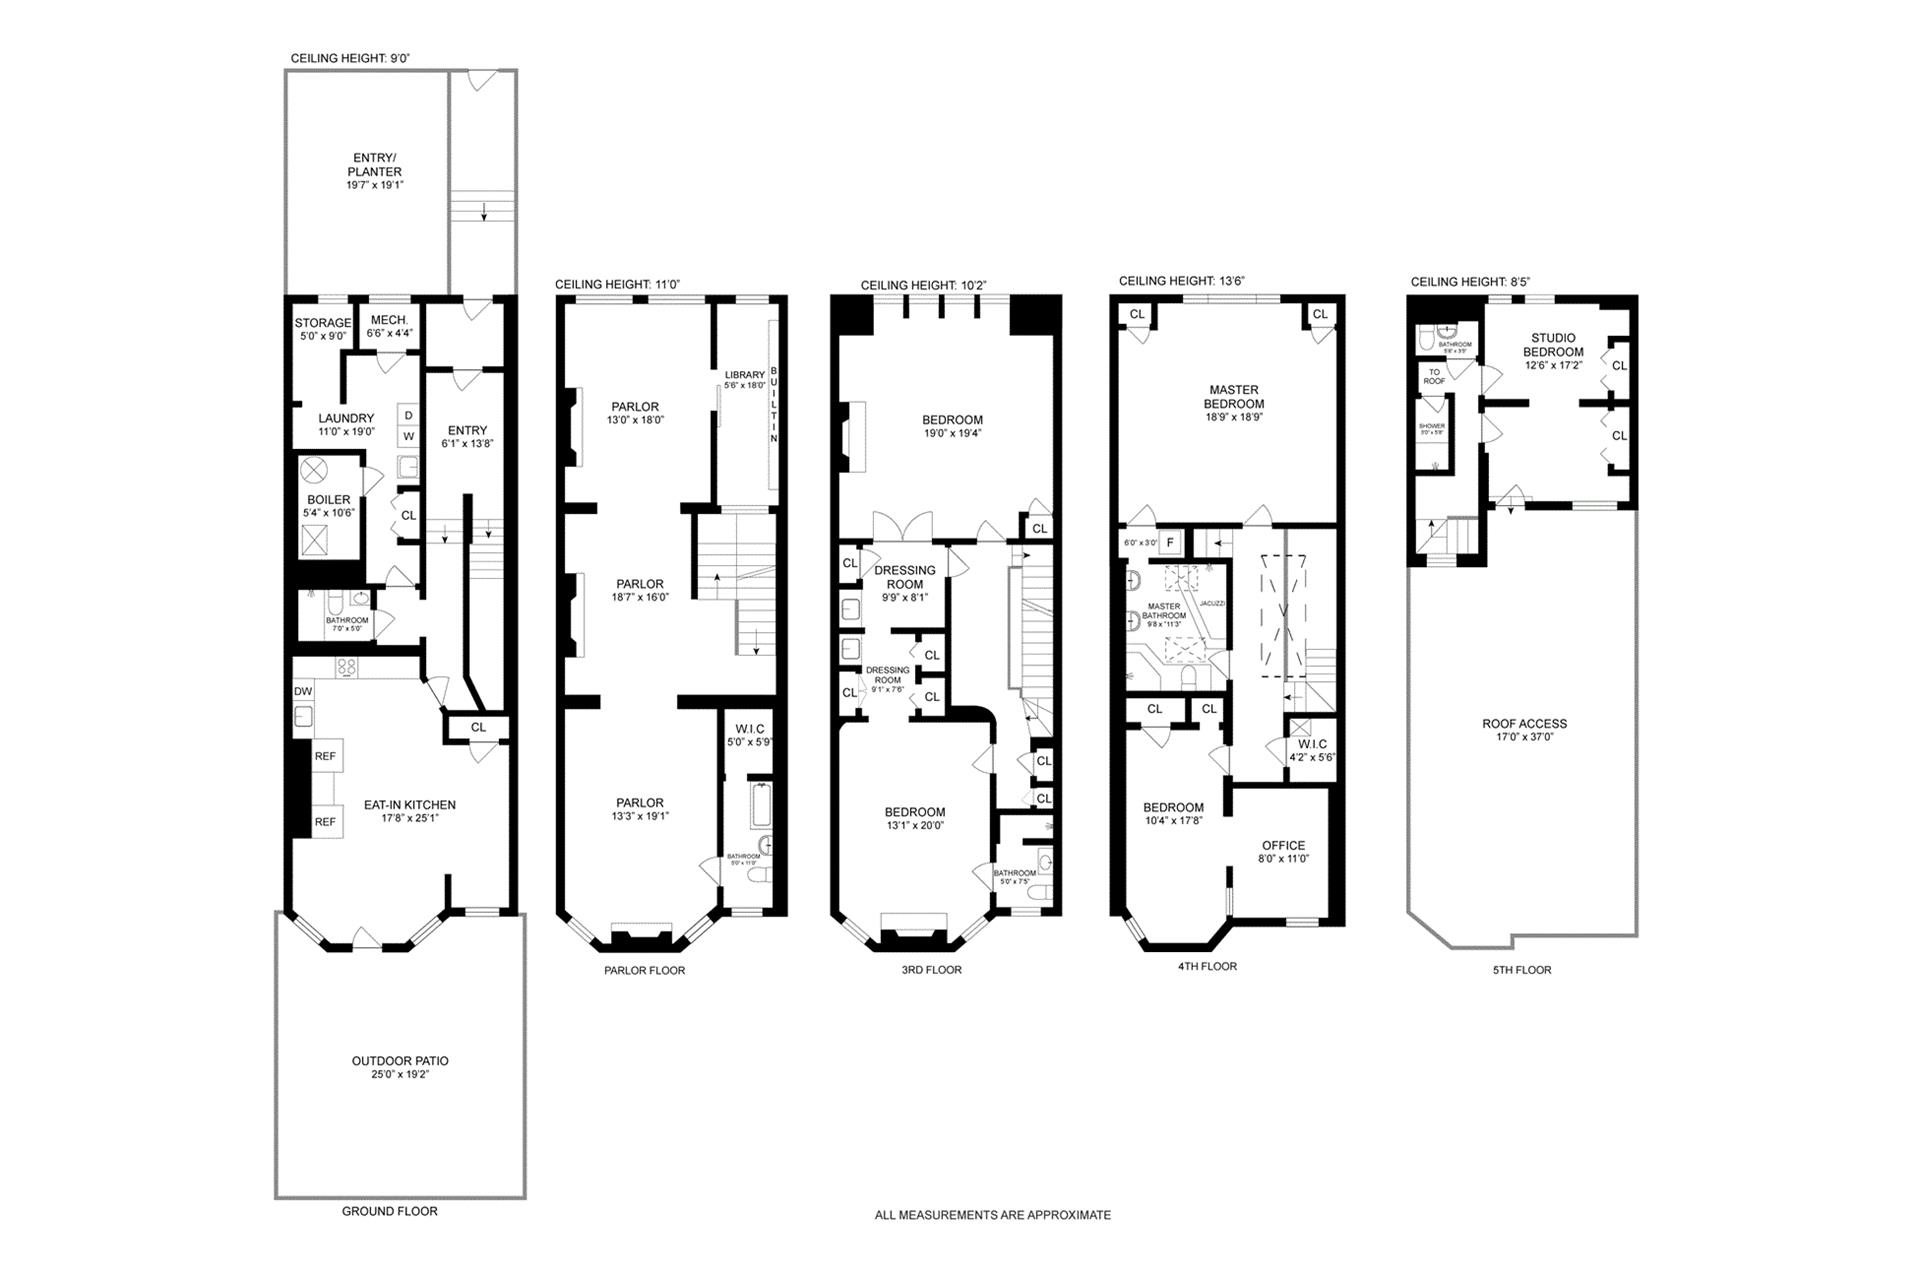 Floor plan of 325 Convent Avenue - Hamilton Heights, New York